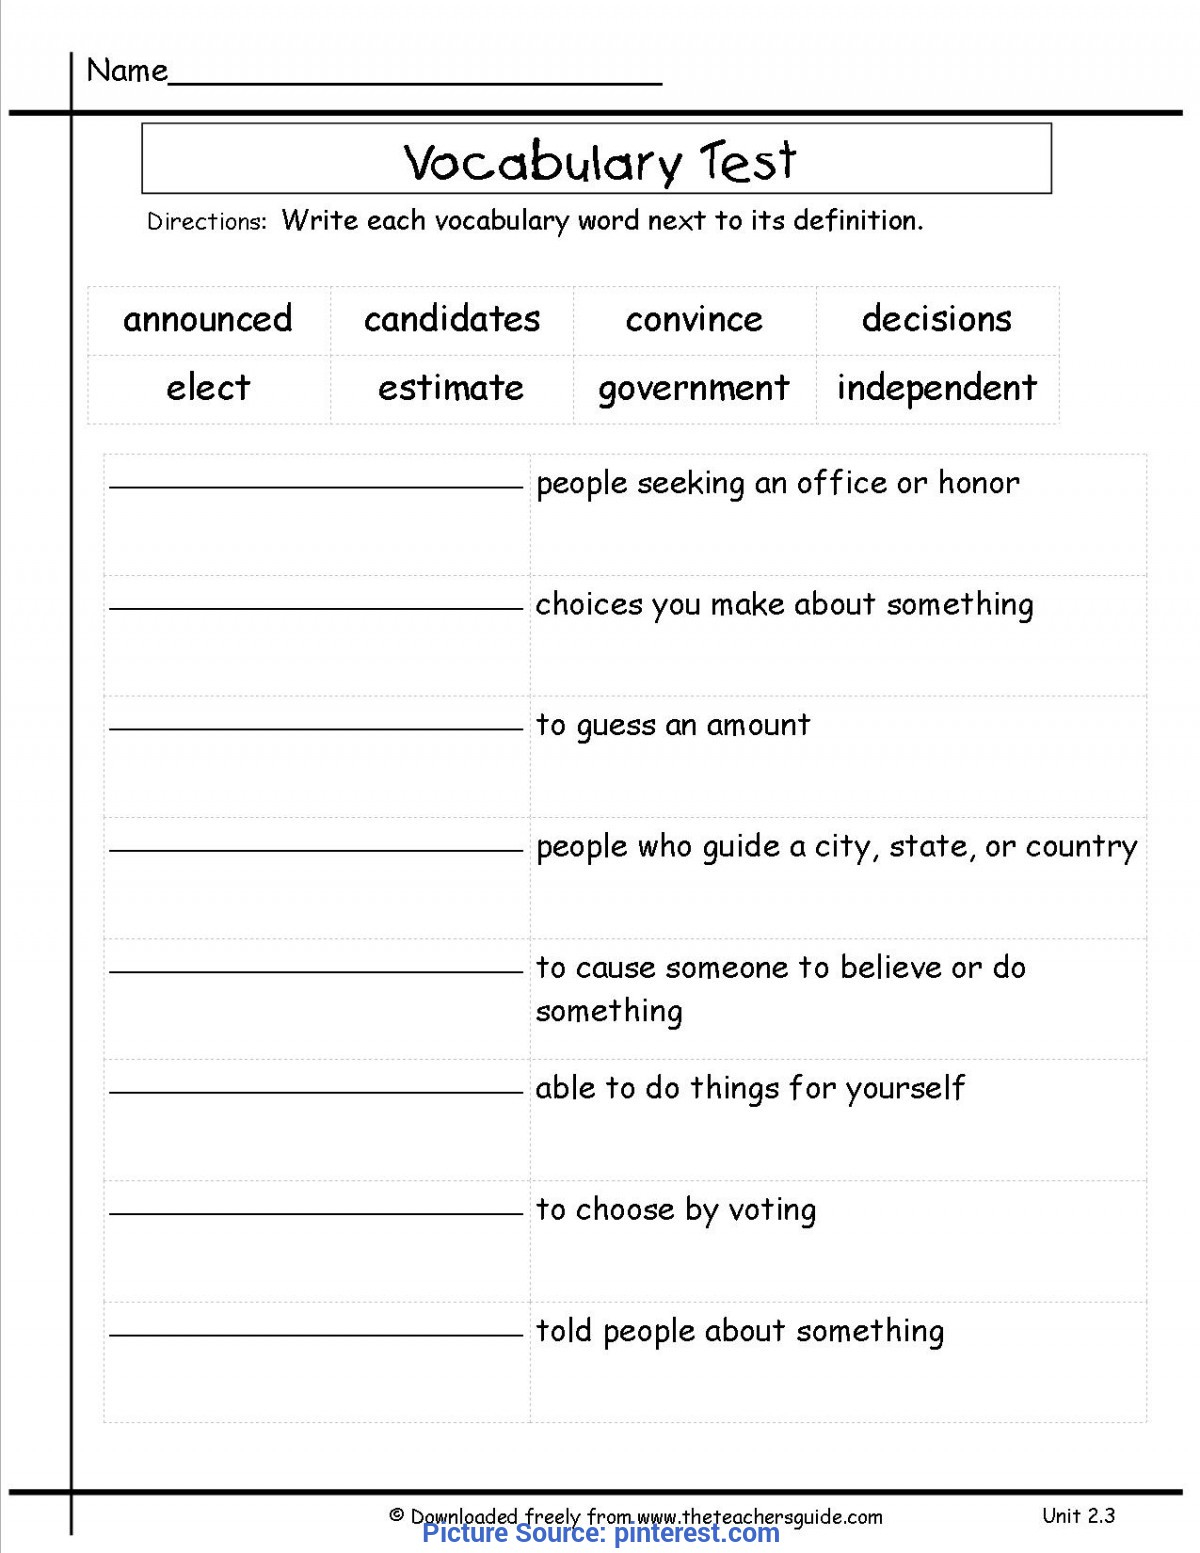 Language Arts Worksheets 3Rd Grade For All Dow Ota Tech